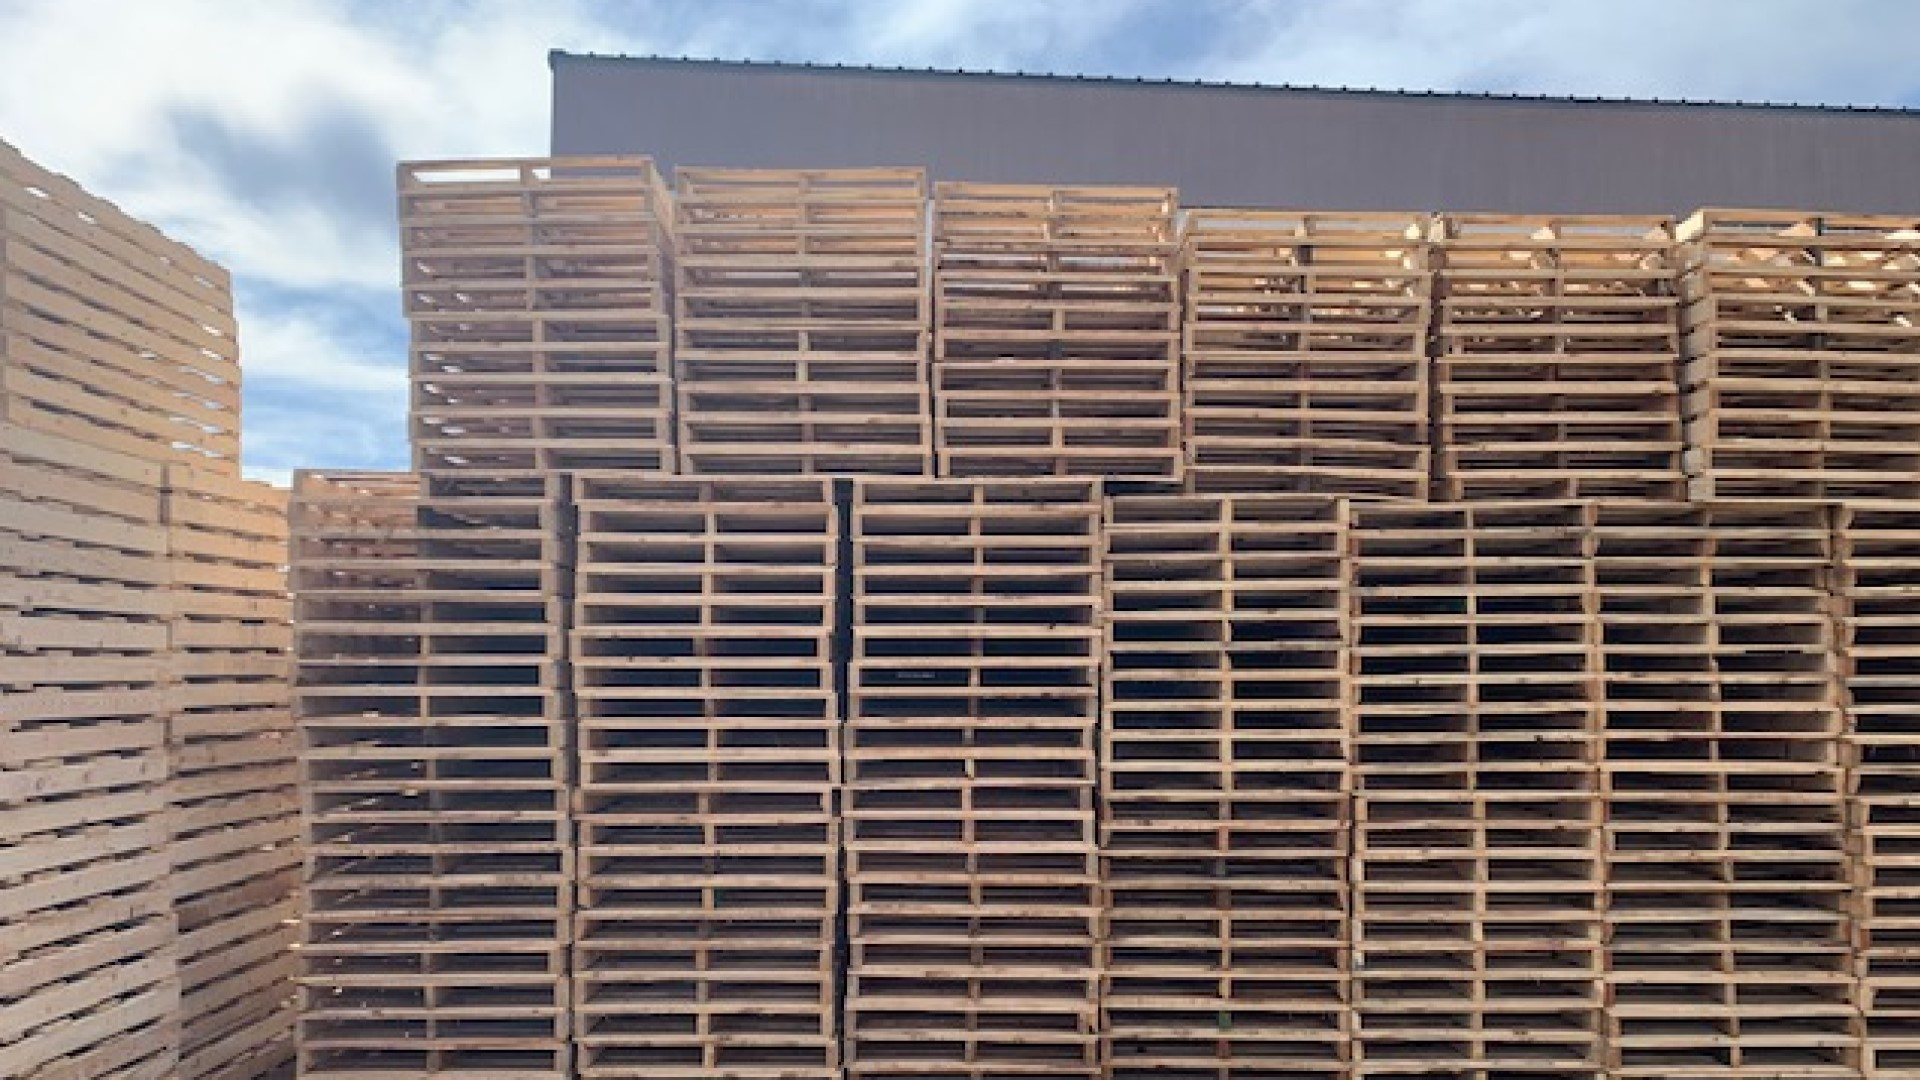 Pallet Company in Phoenix, Arizona with Brand New Pallets for Sale